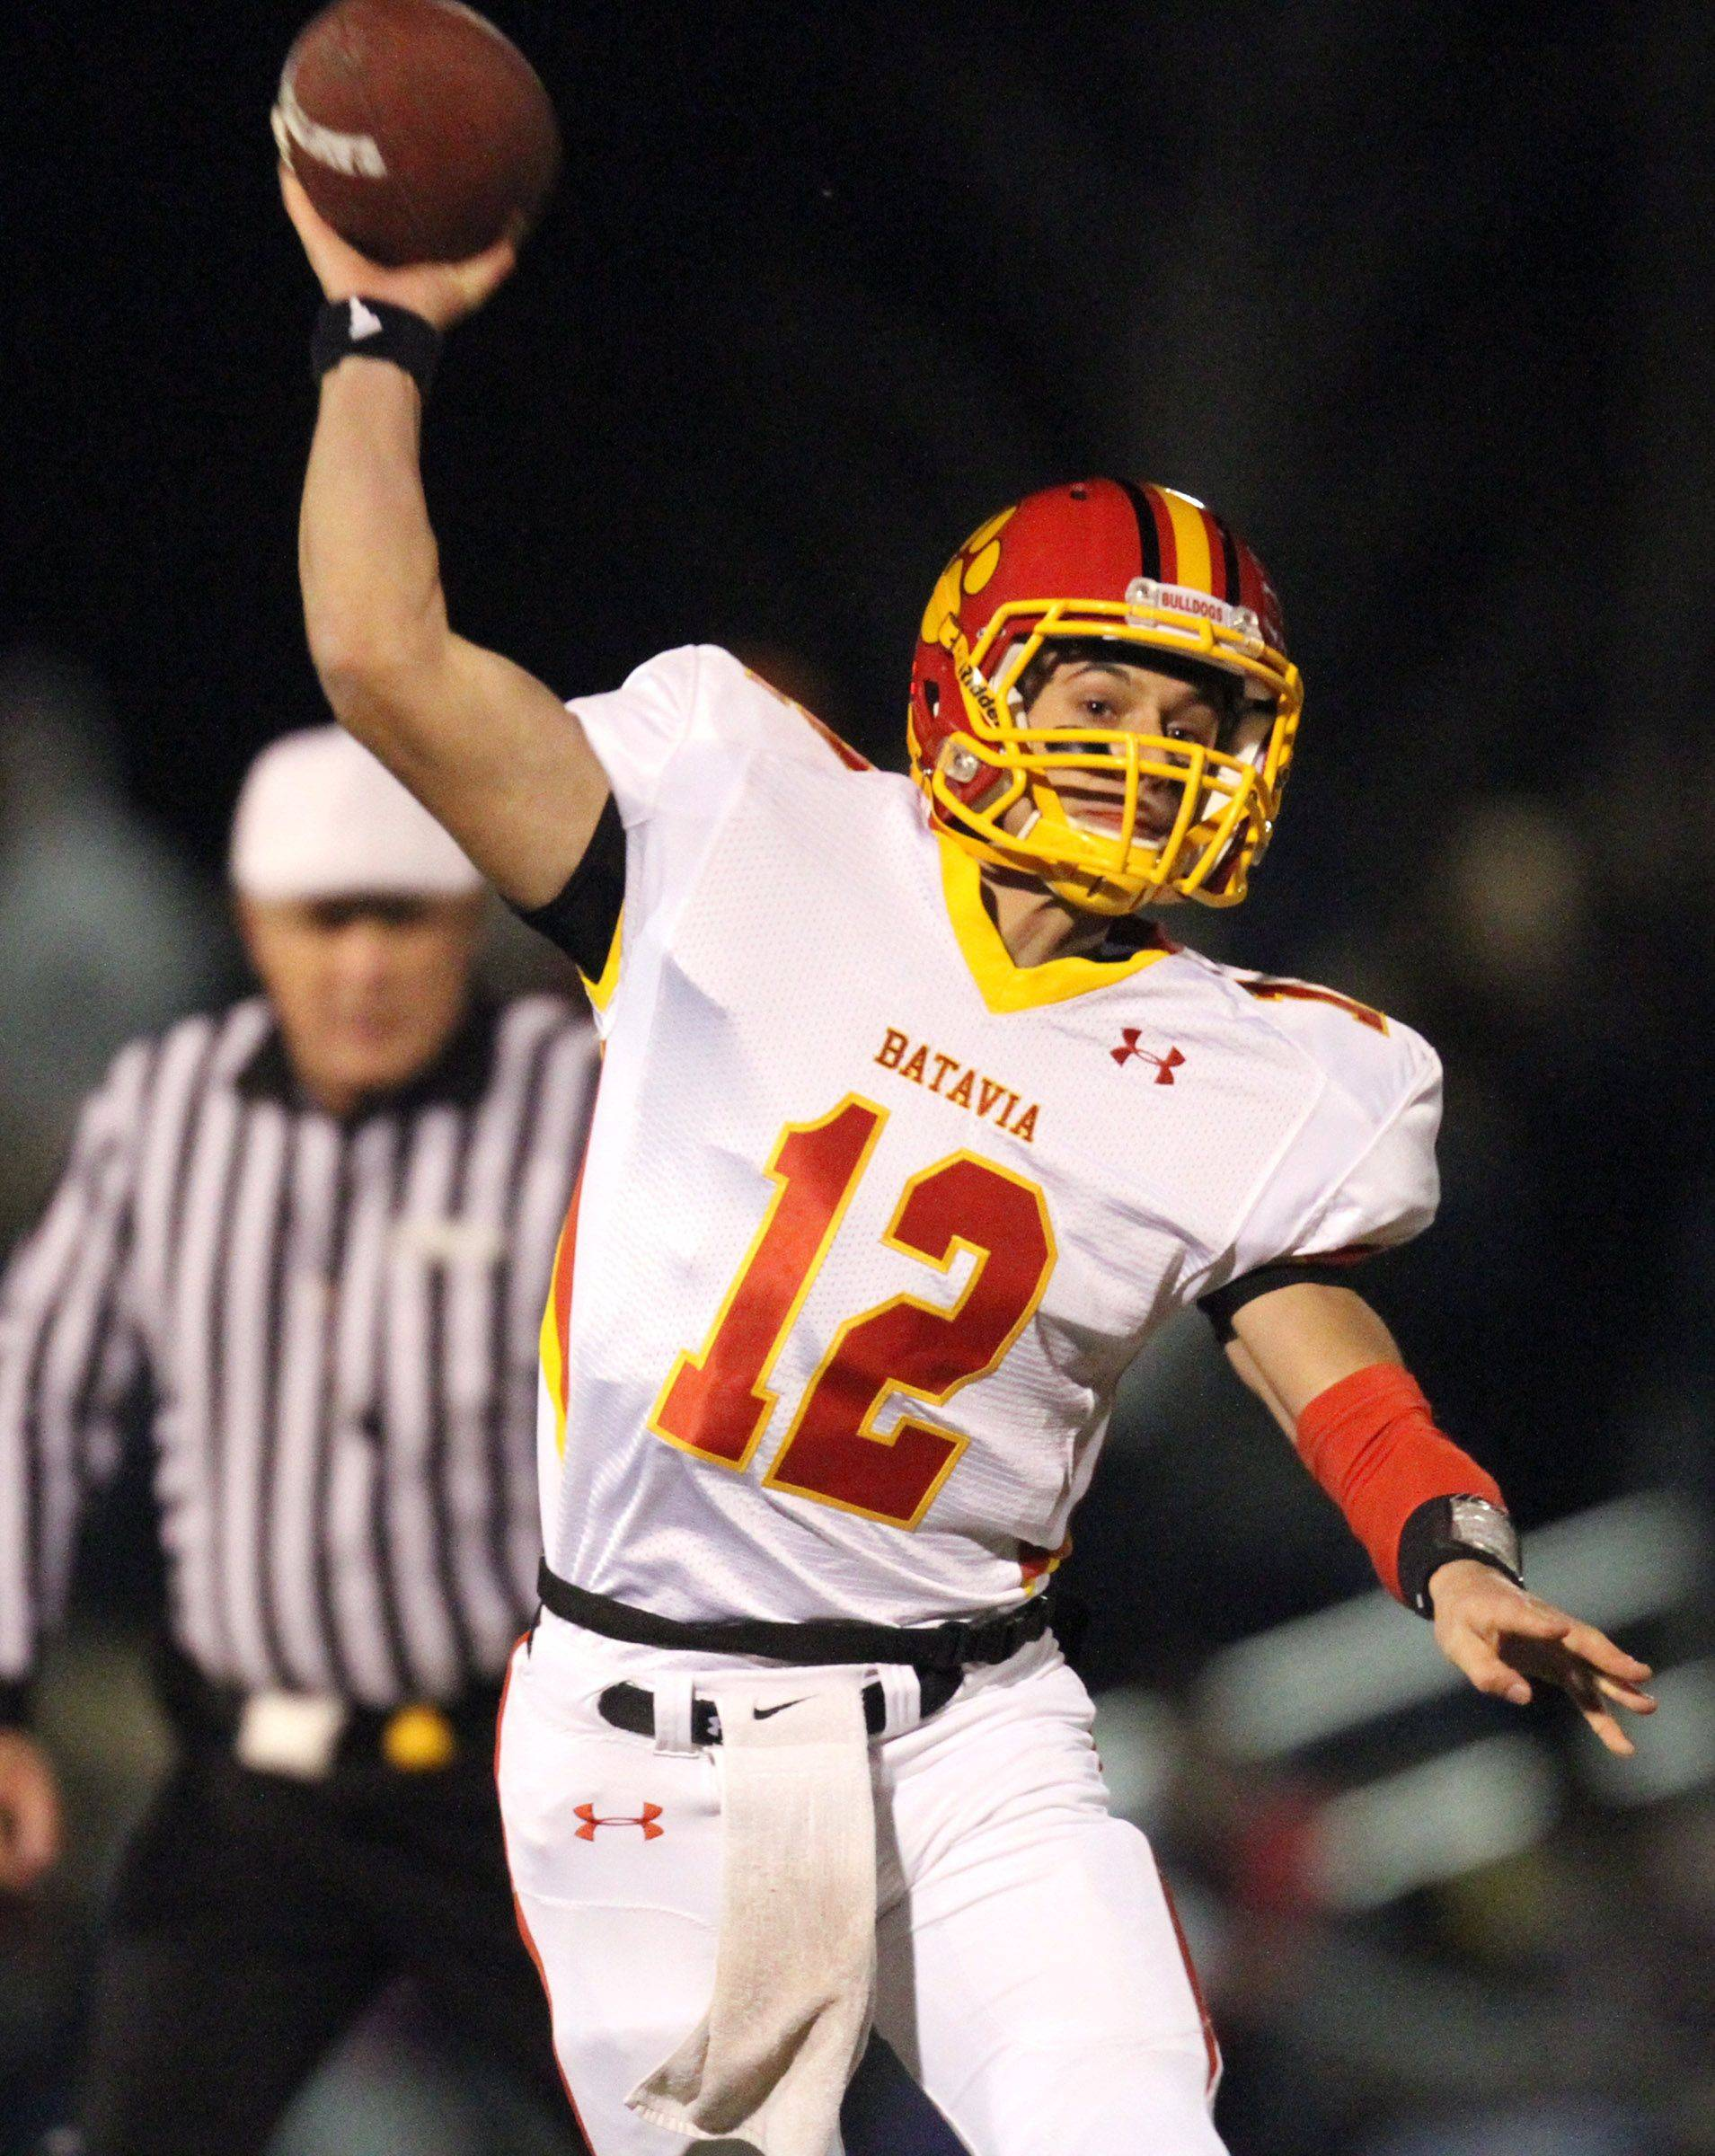 Batavia's quarterback throws the ball during the first half at Lakes on Saturday, November 12th.